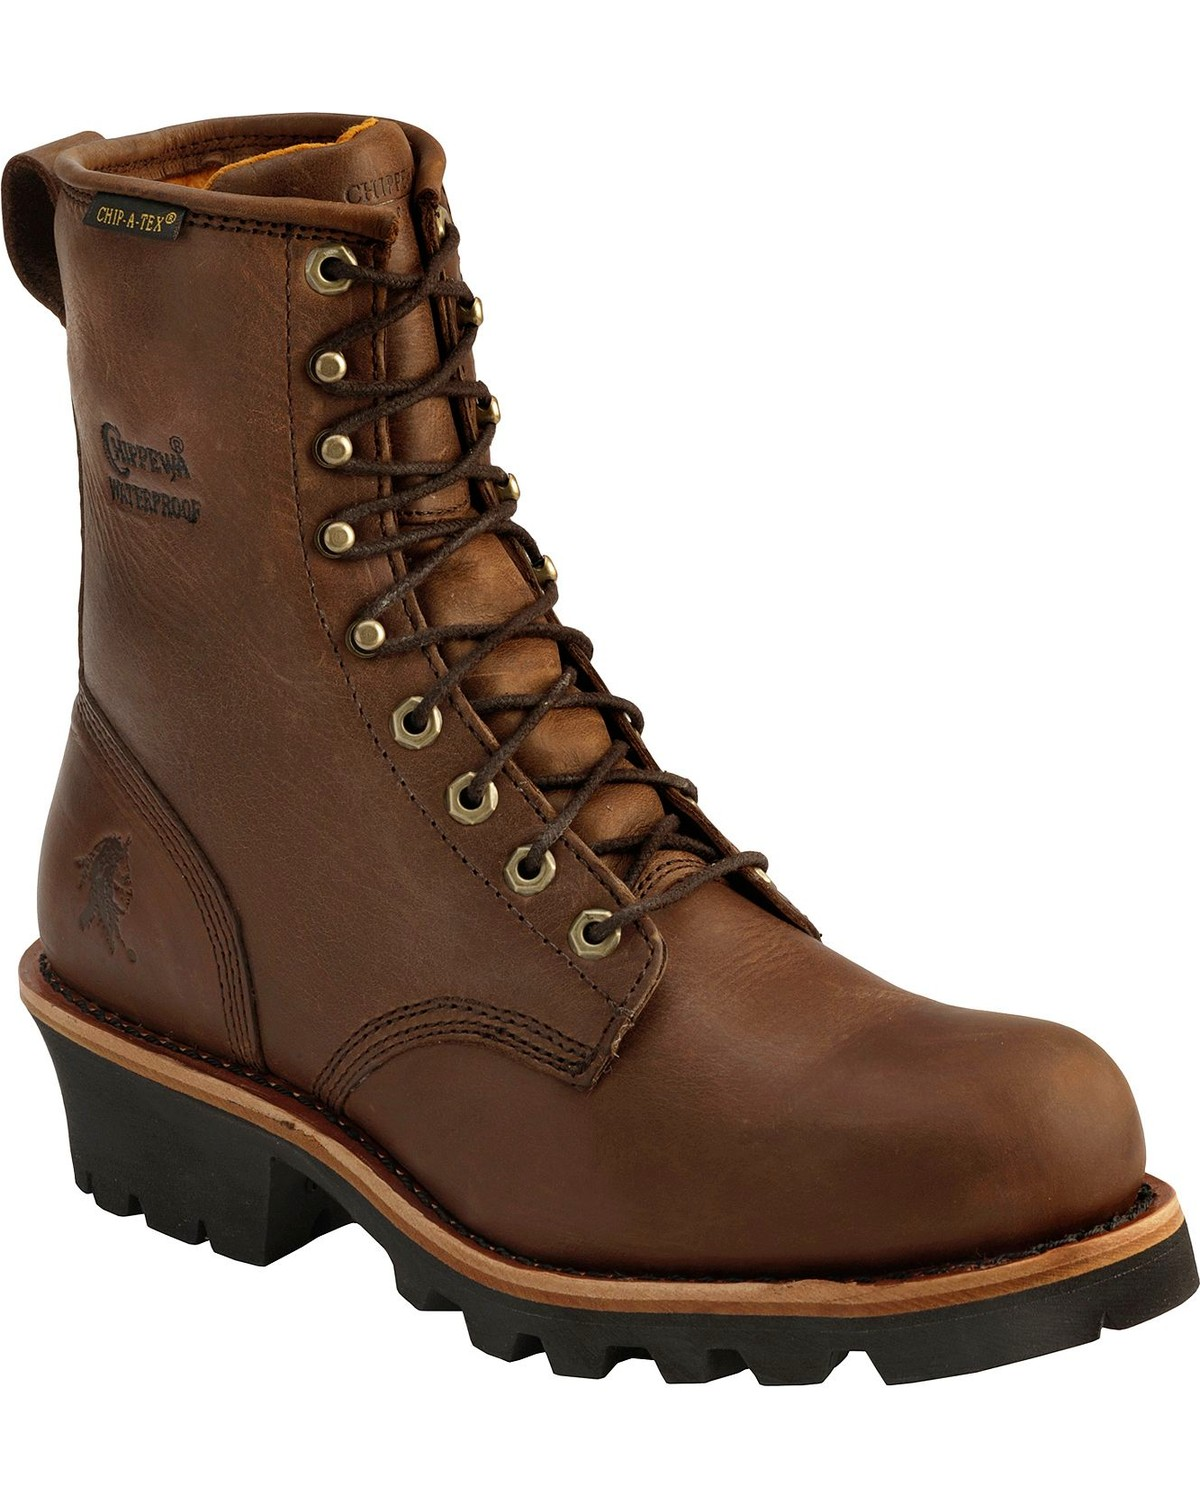 Chippewa Women S Waterproof Insulated Logger Work Boots